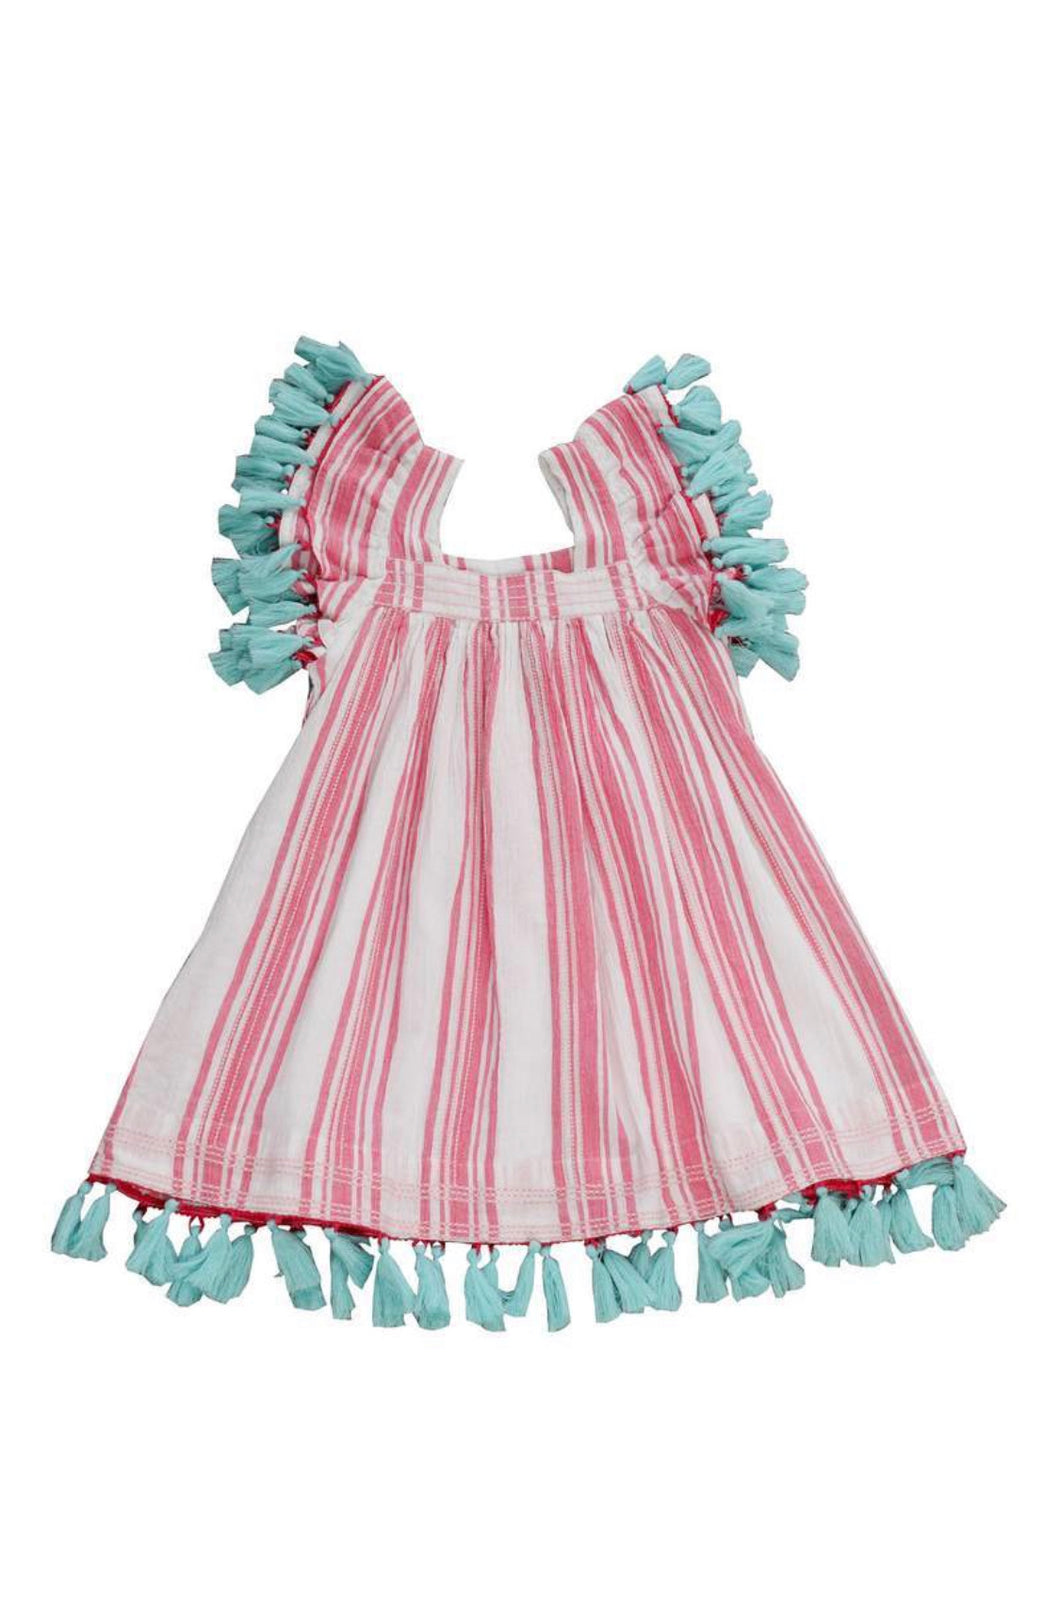 Serena Tassel Dress - Pink Stripe (2, 4, 6)